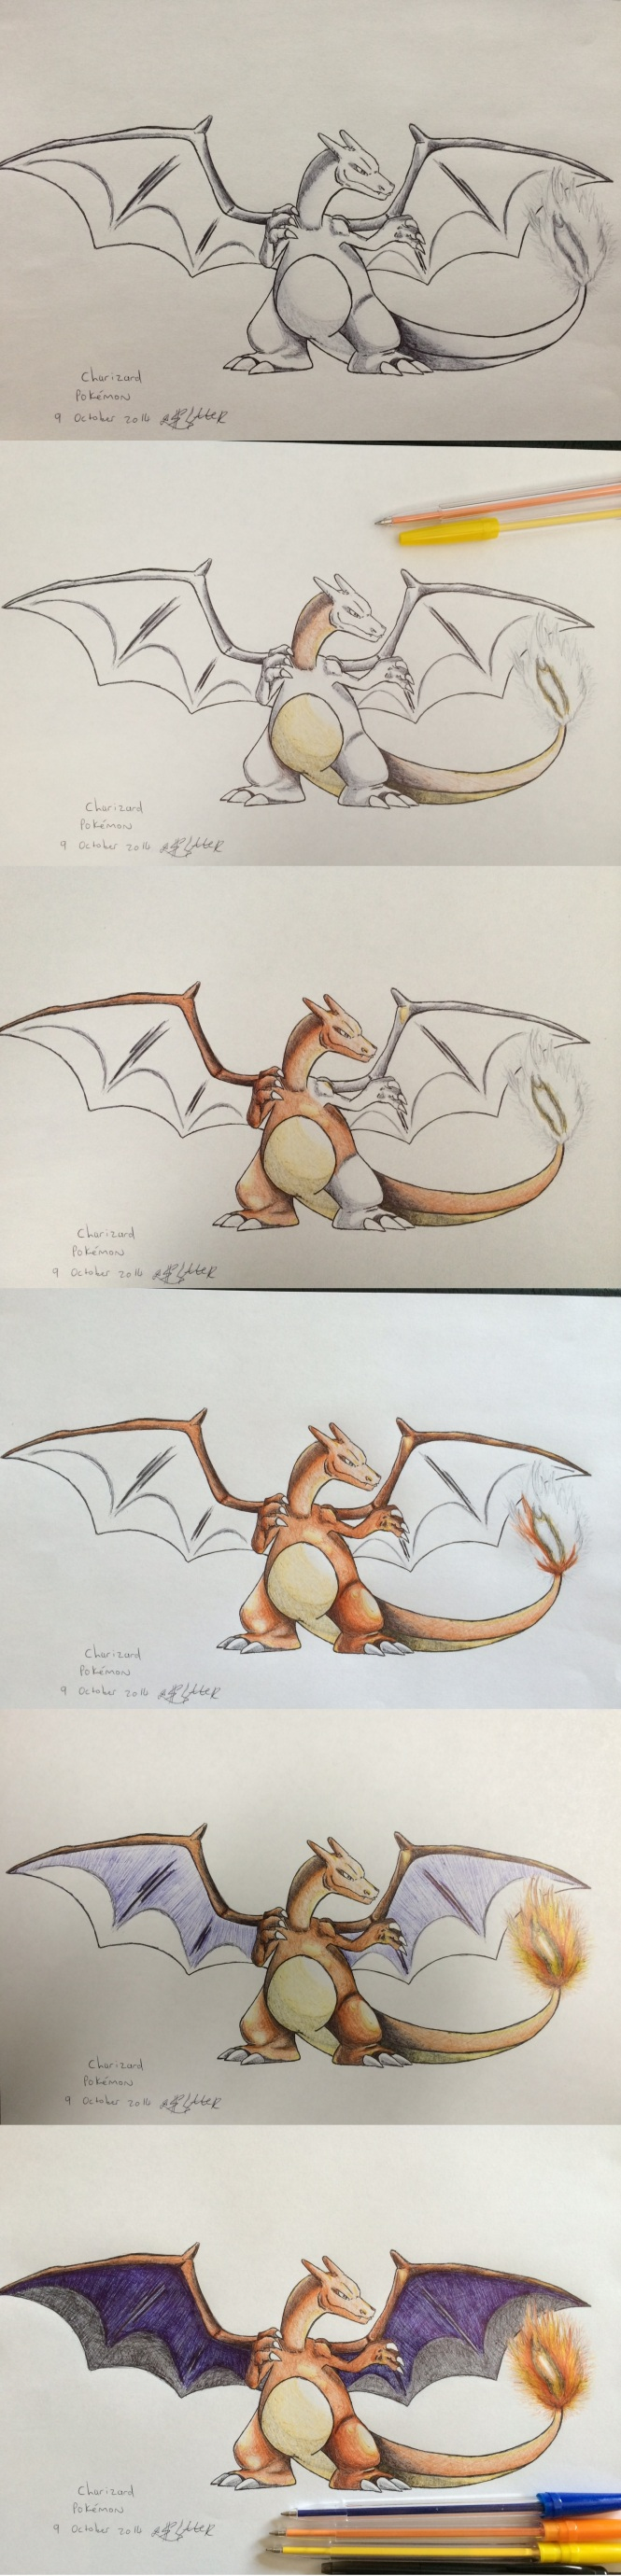 Charizard Progression